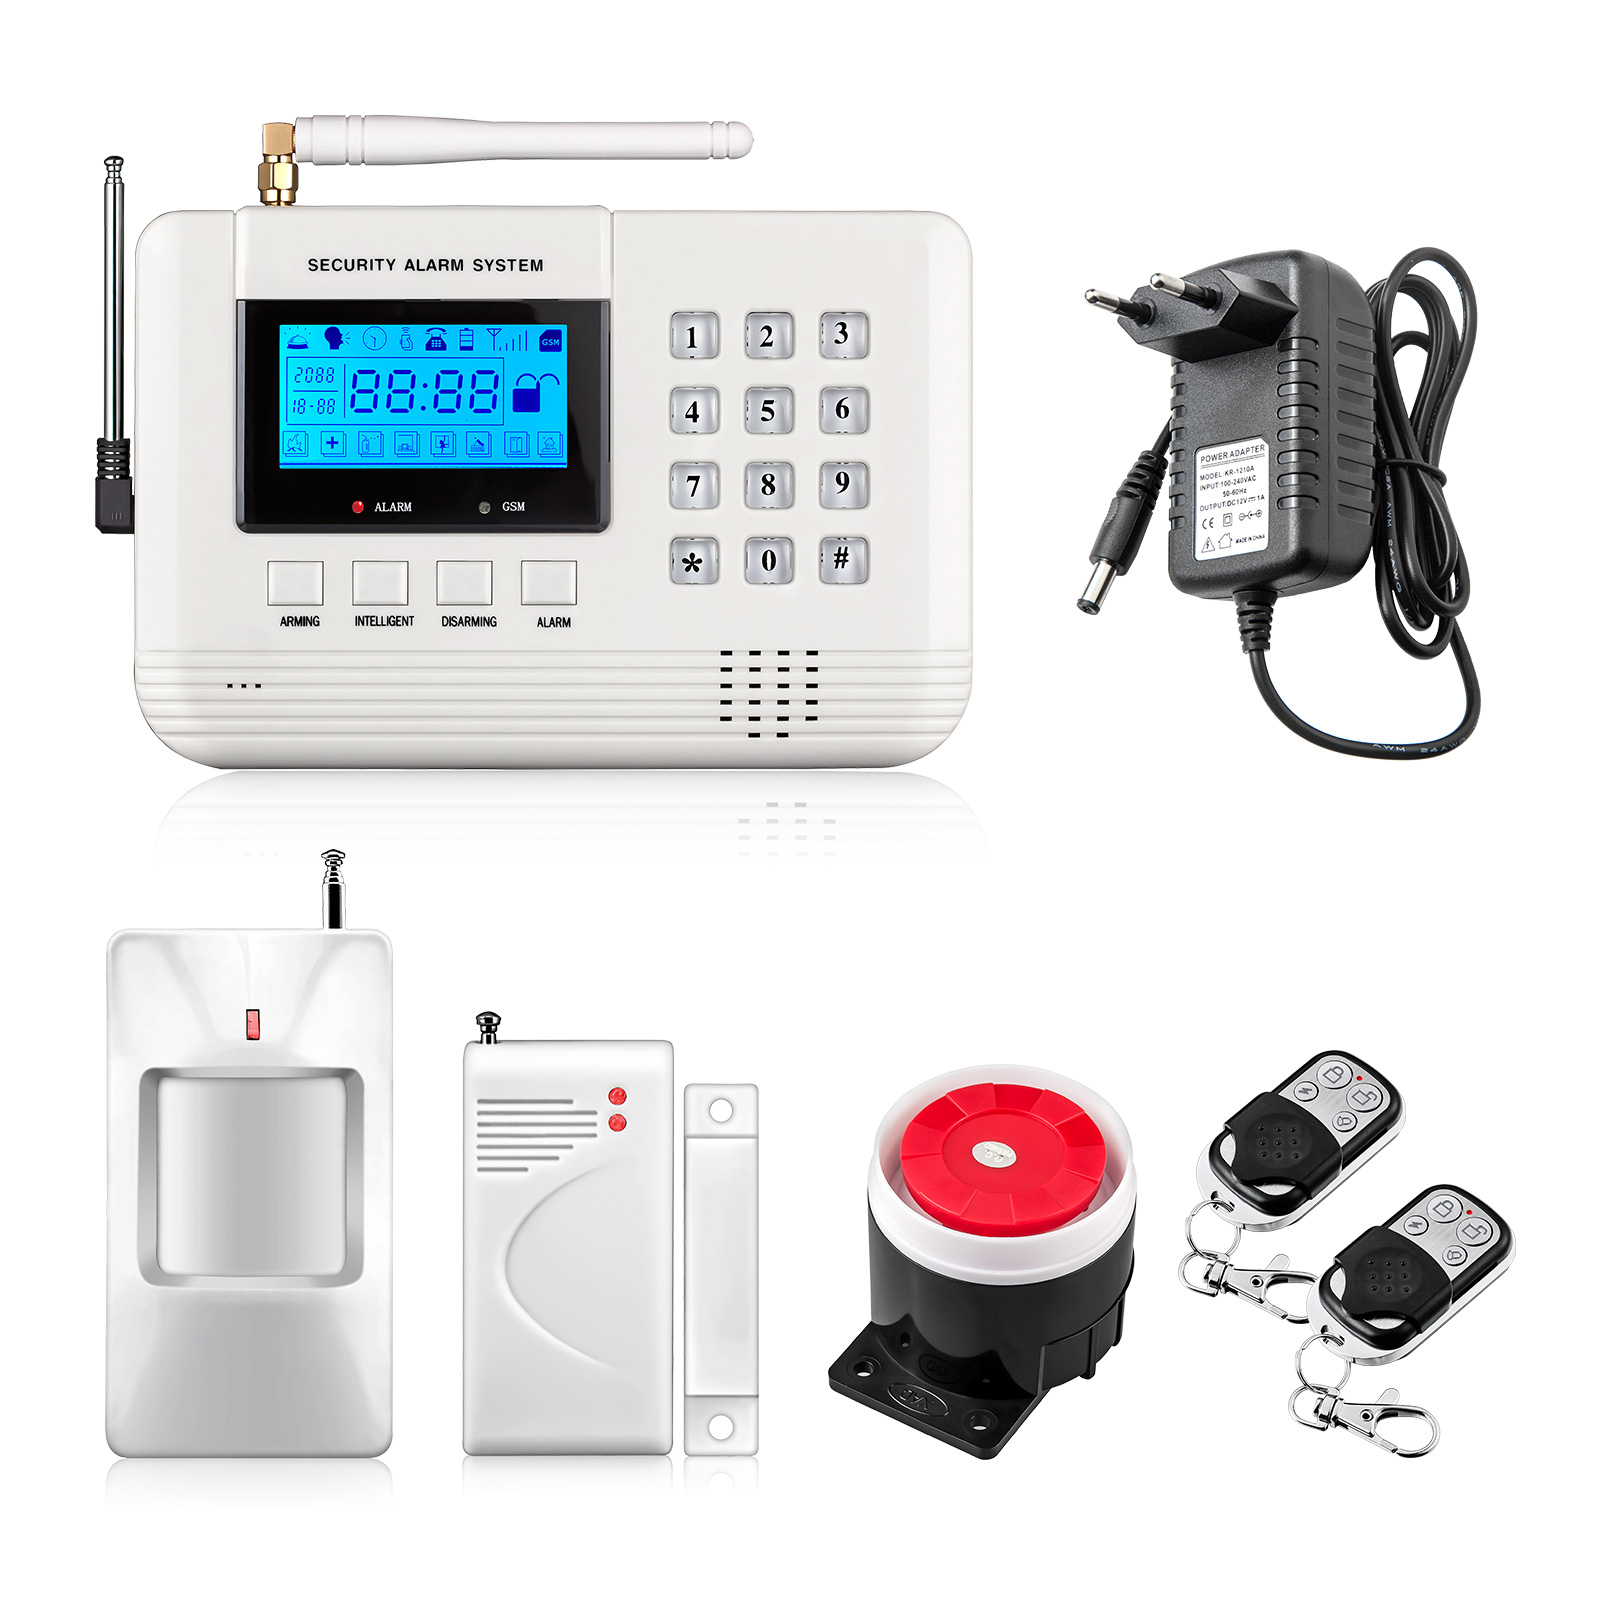 New arrivel LCD Screen 433Mhz Remote Control Wireless GSM sms call PSTN phone line dual network Home Security gsm Alarm System(China (Mainland))